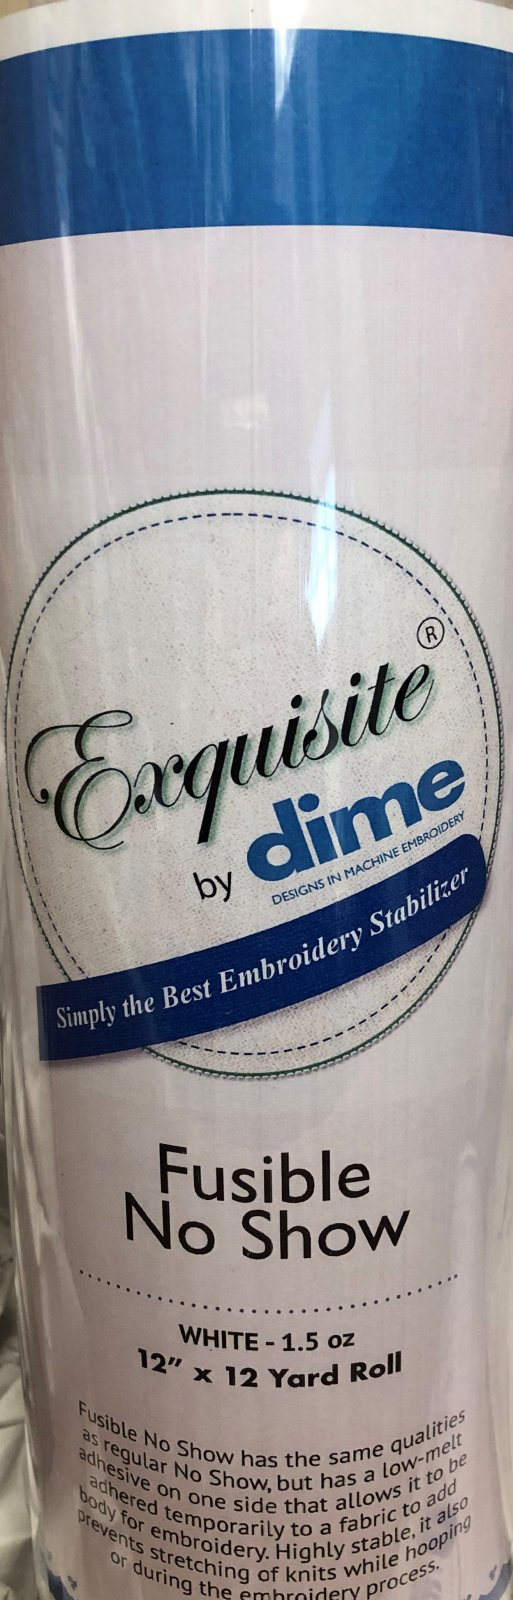 Dime Exquisite Fusible No Show Cutaway 12 x 12Yd Roll `